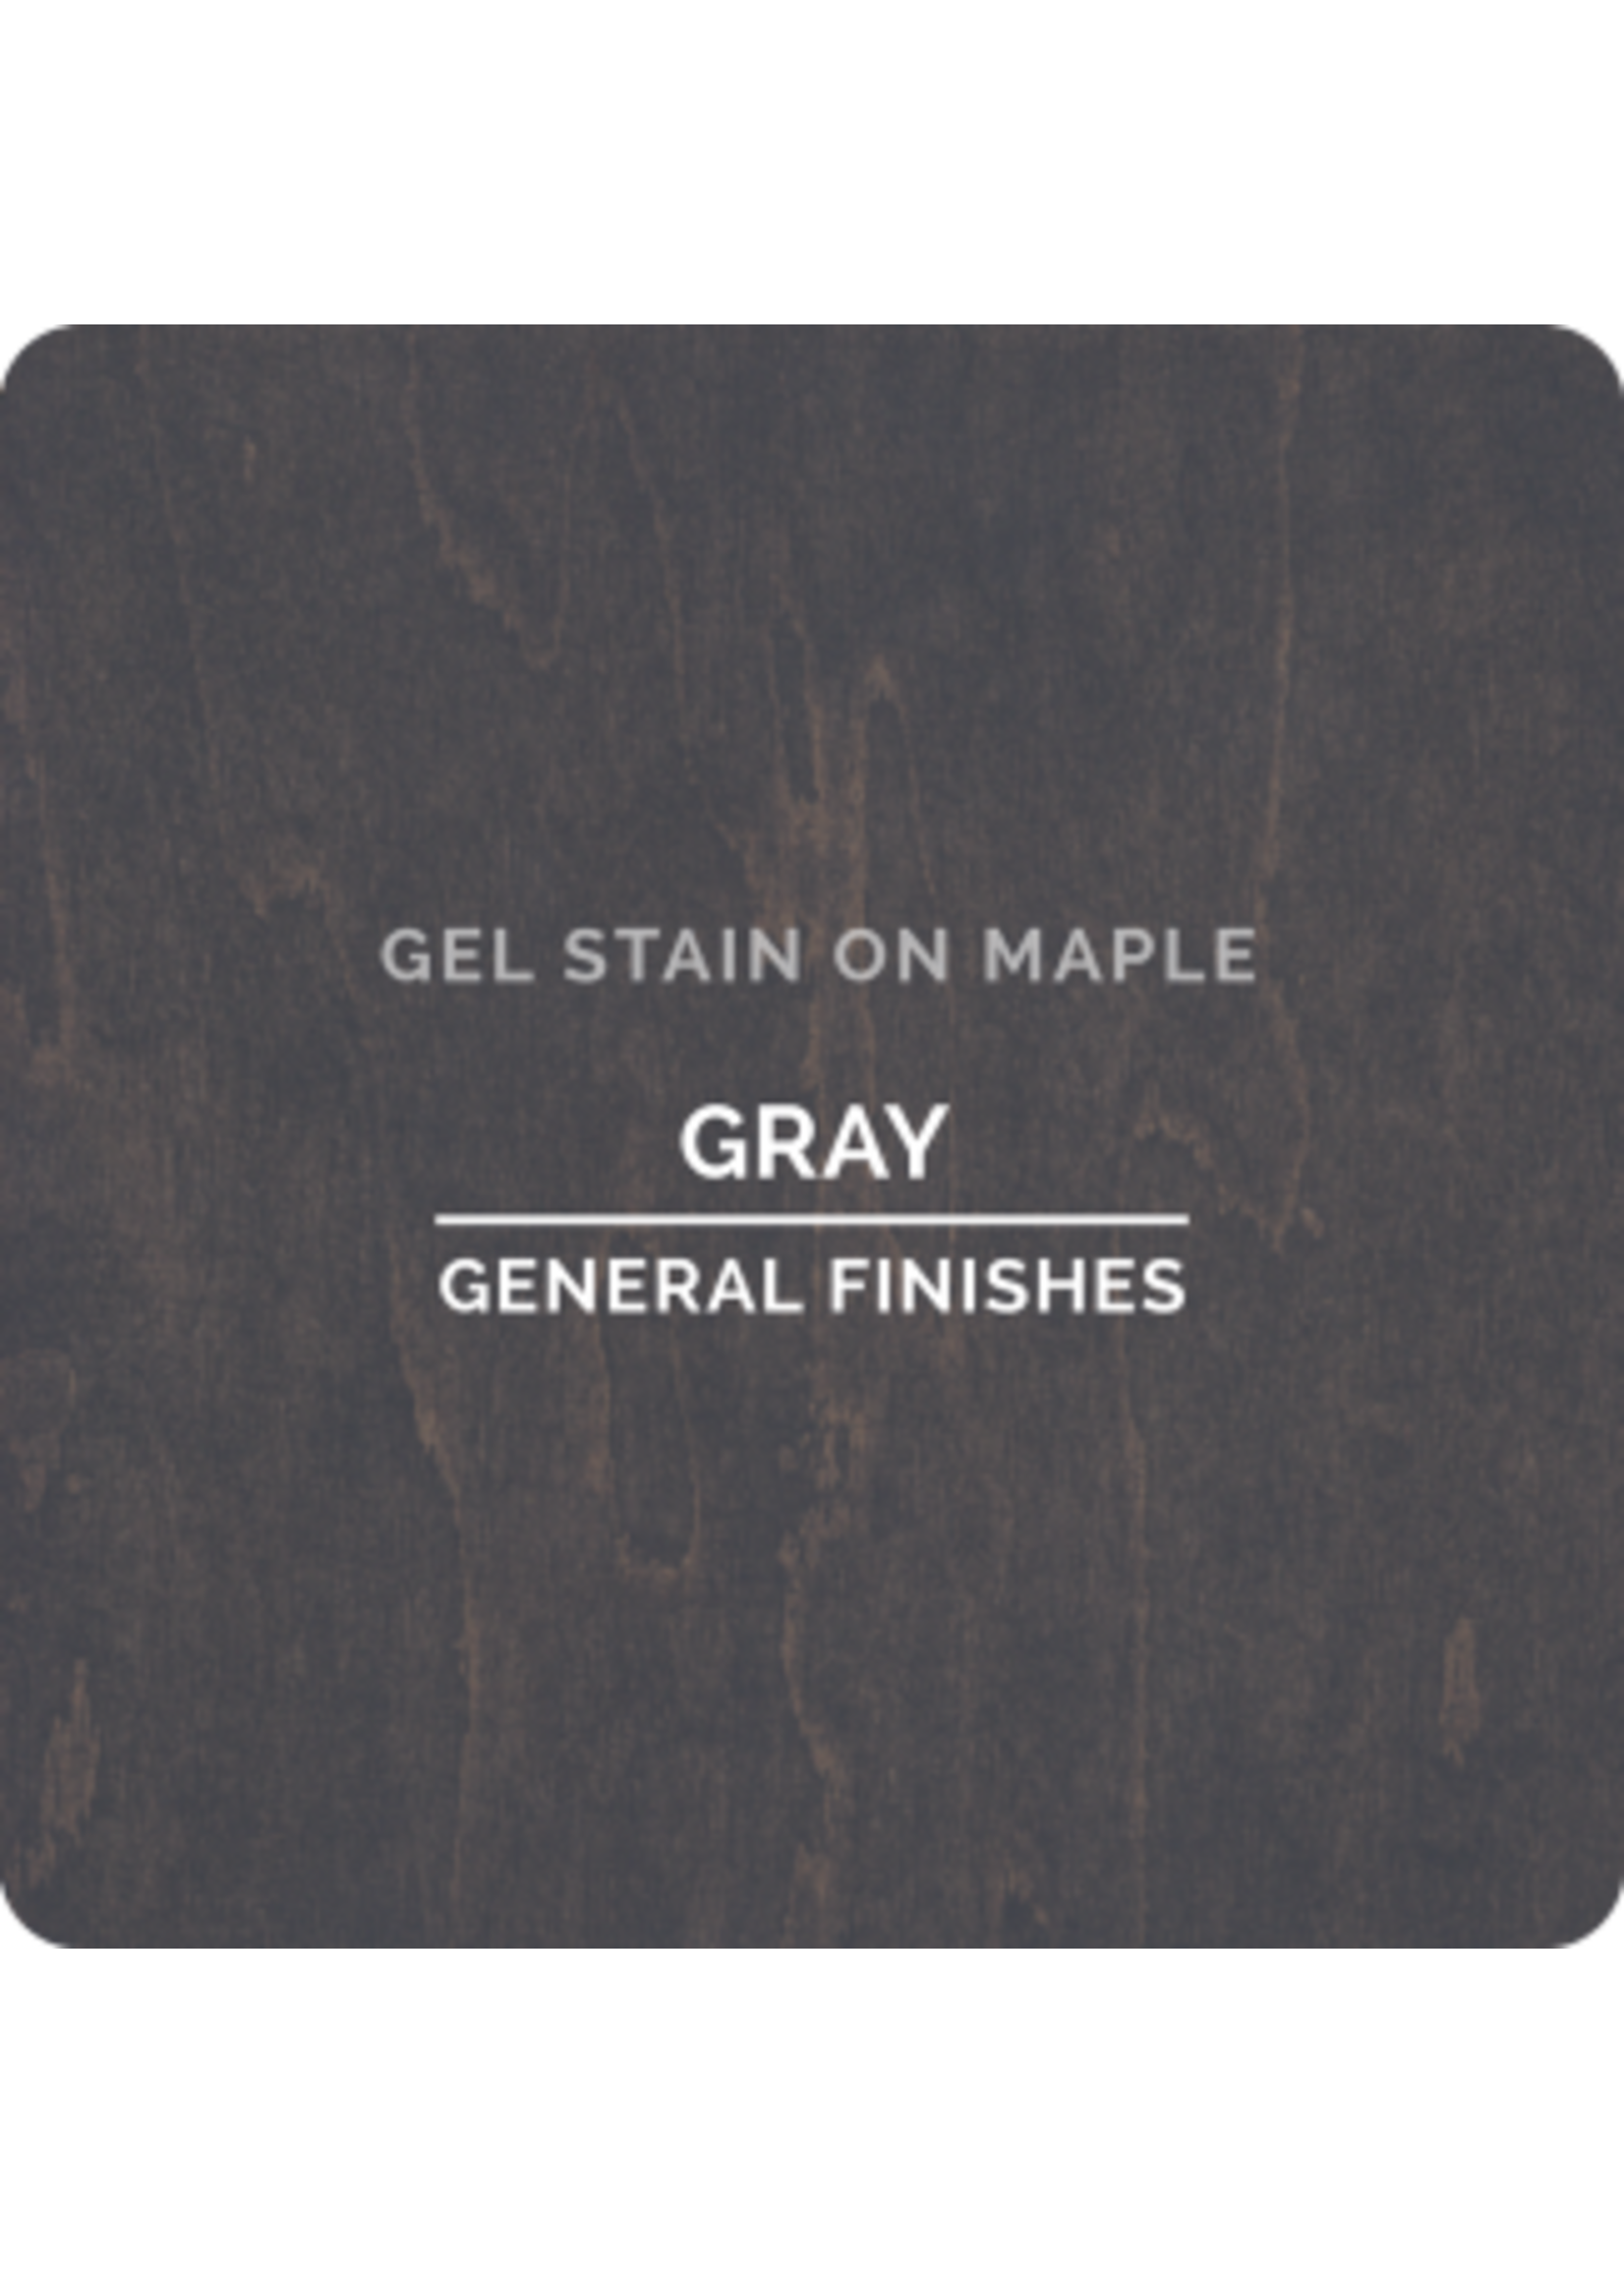 General Finishes Gray General Finishes Gel Stain